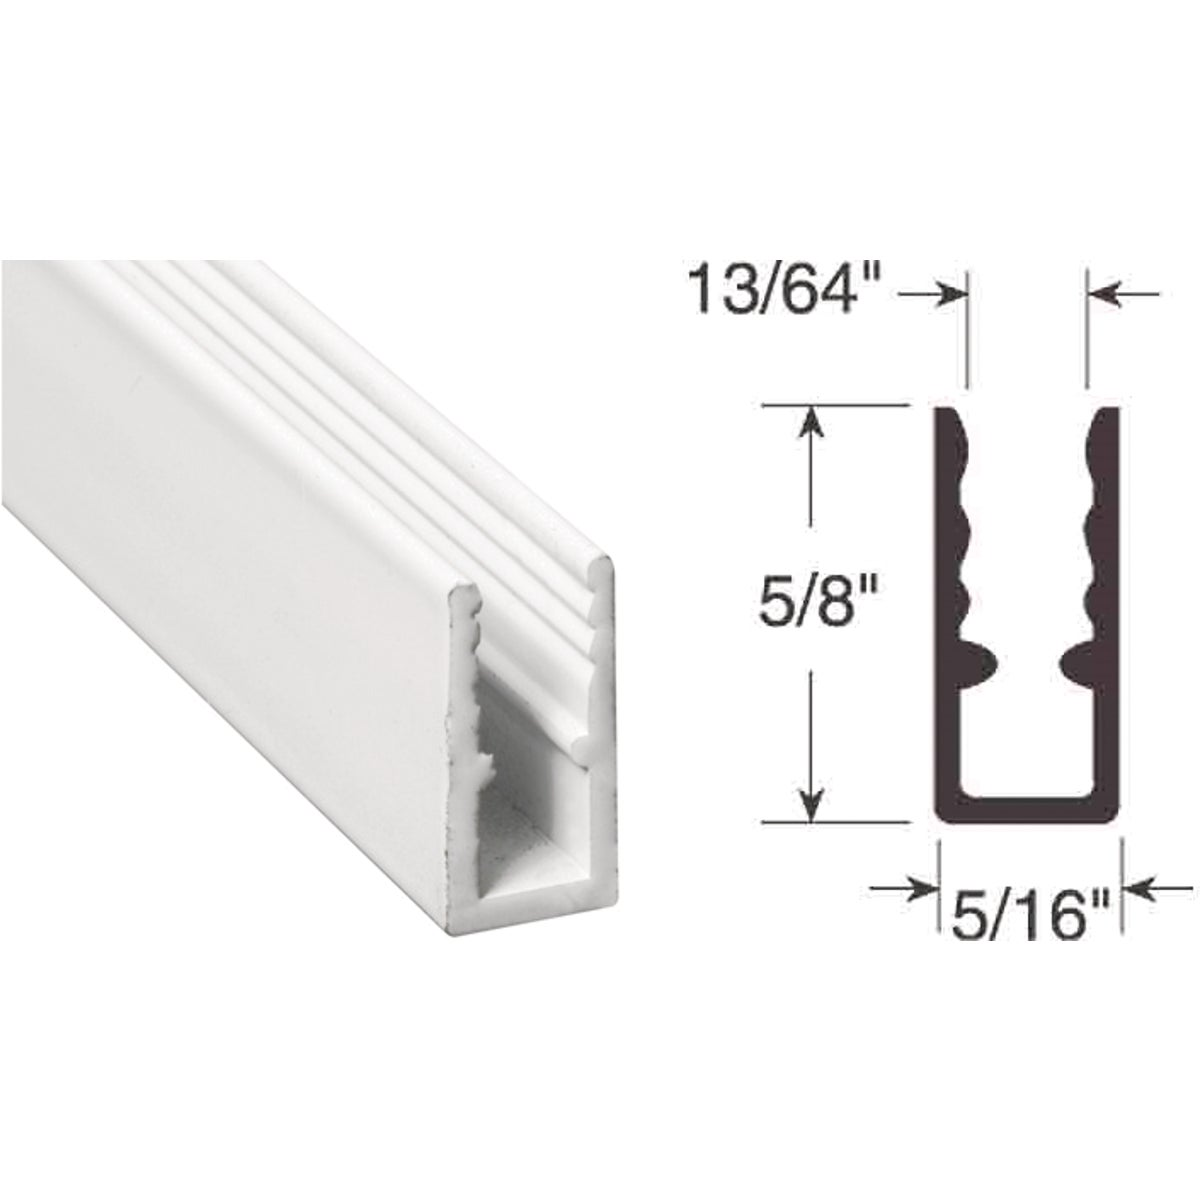 5/16X5/8X94 WINDOW FRAME - PL14166 by Prime Line Products